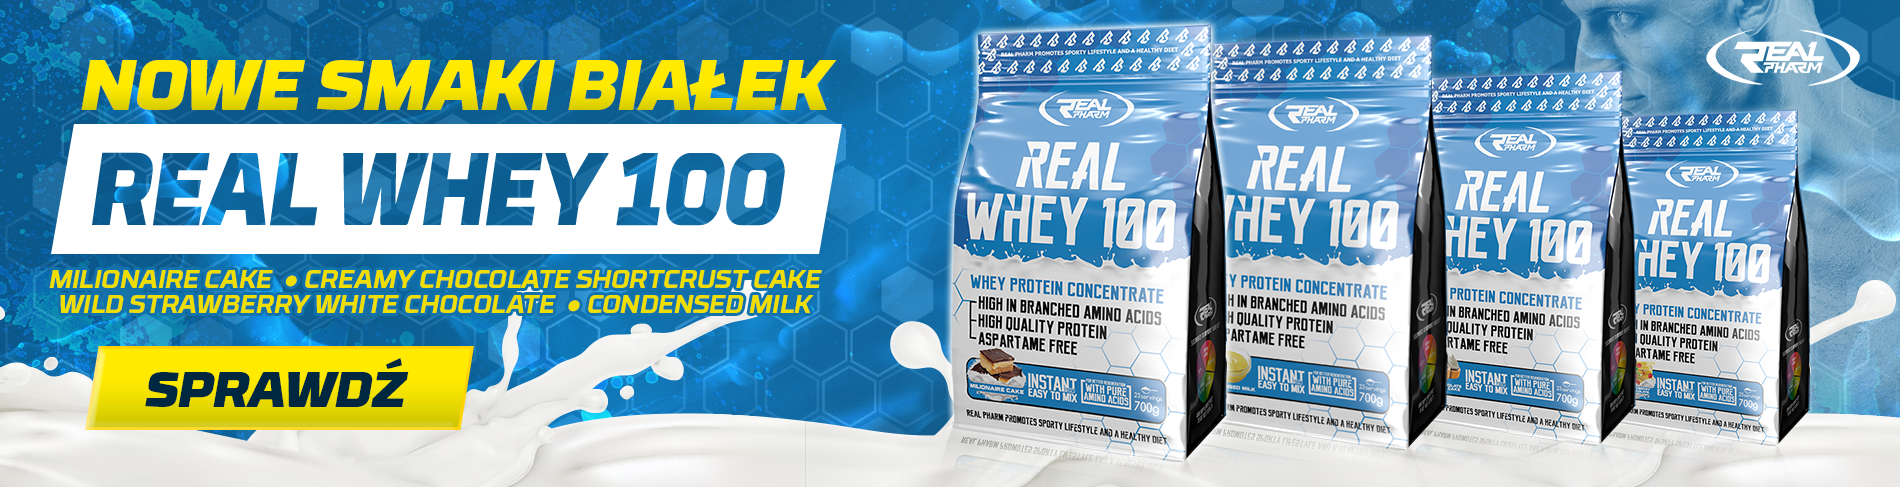 Real Whey